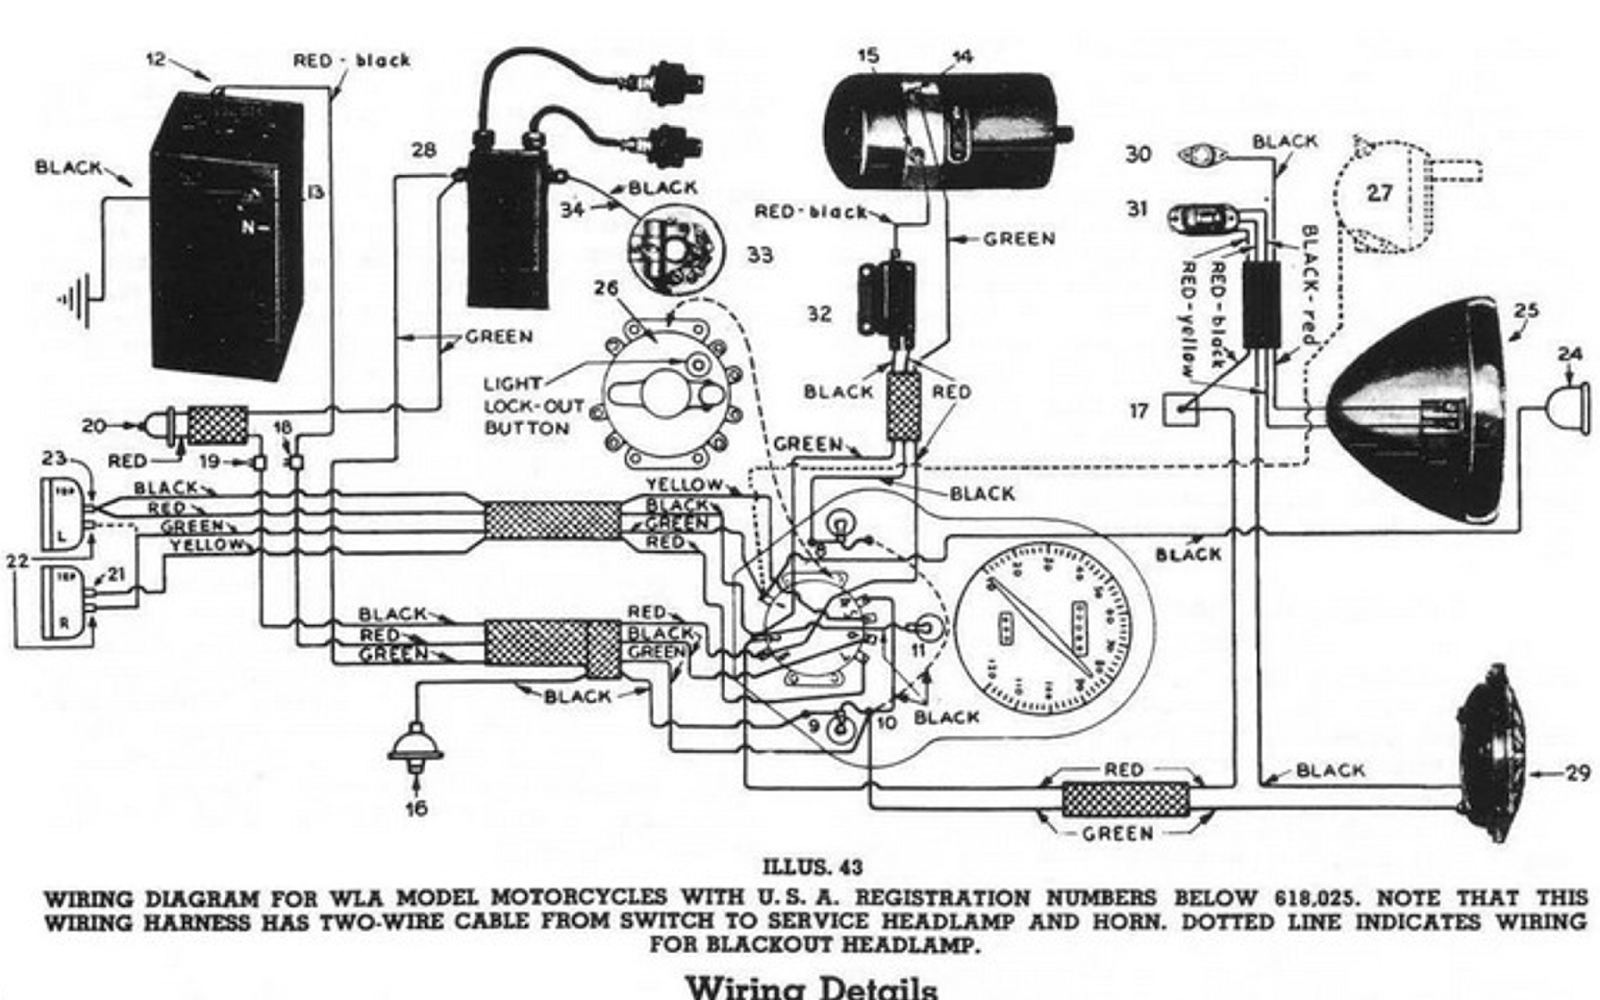 medium resolution of harley davidson wiring blog wiring diagram1941 harley davidson wl restoration re wiring the harley davidson wl